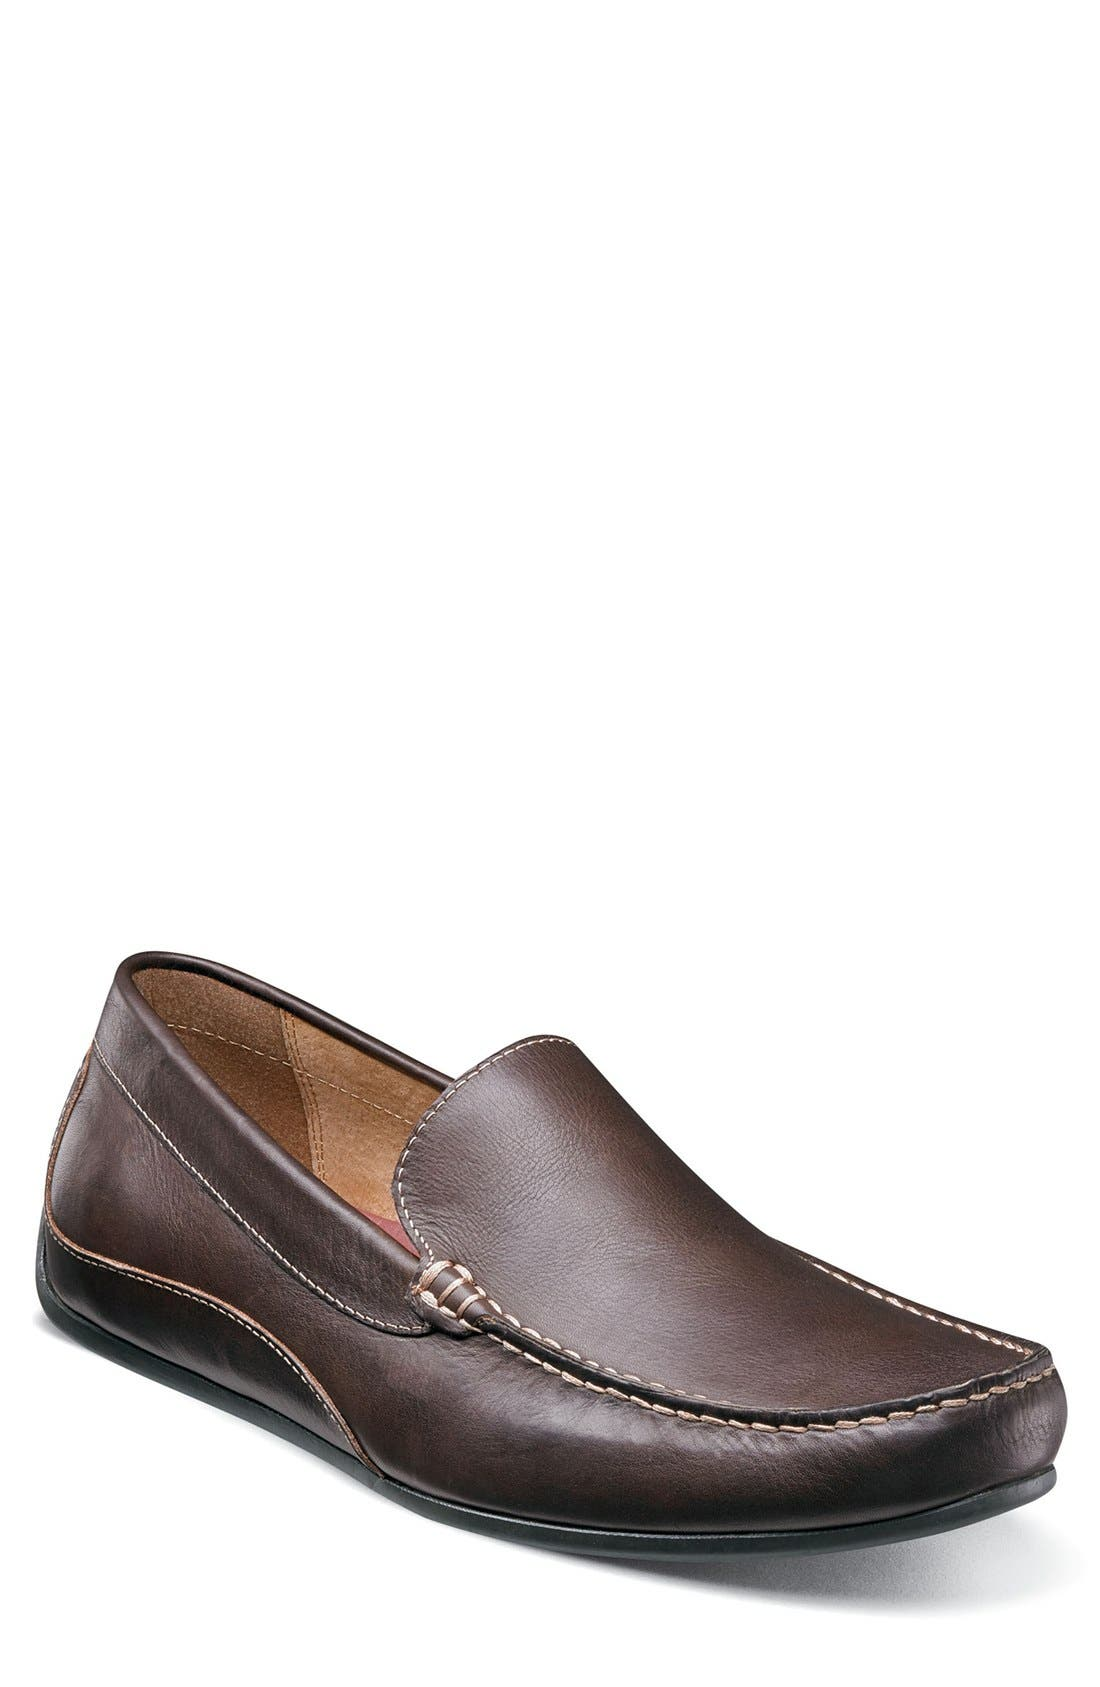 Oval Driving Shoe,                         Main,                         color, Brown Leather